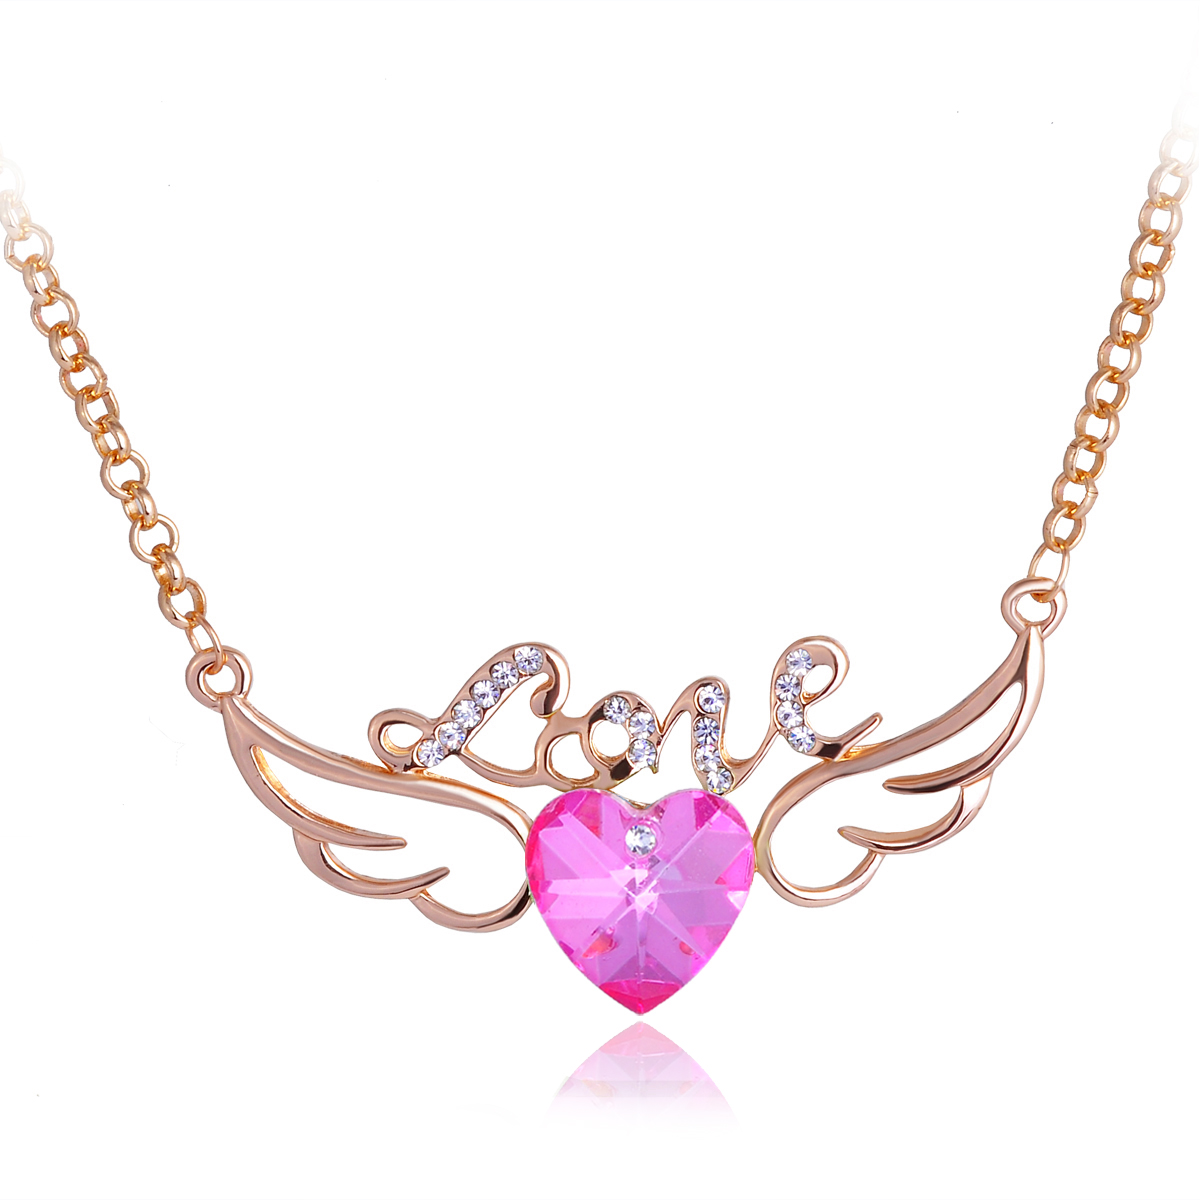 Fashion Jewelry Angel Wings Crystal New Pendant Gold & Silver Chain Necklace